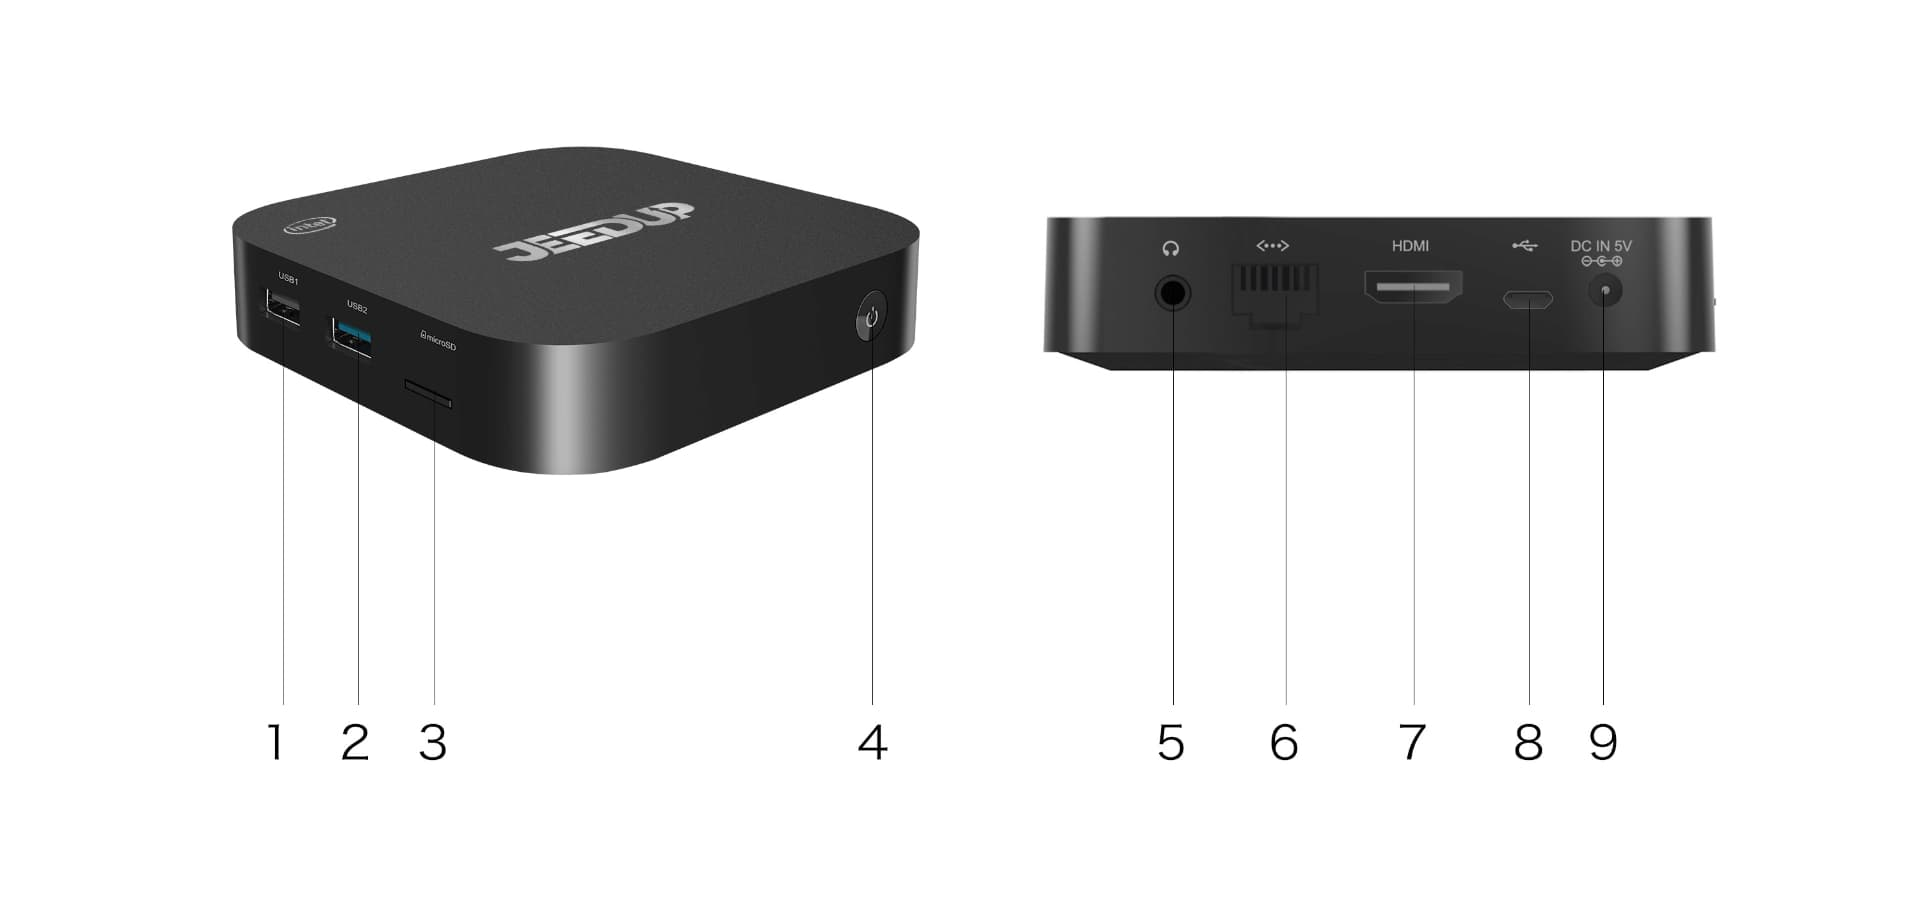 Box Domotique Jeedup Sous Jeedom Avec Dongle Rfxcom